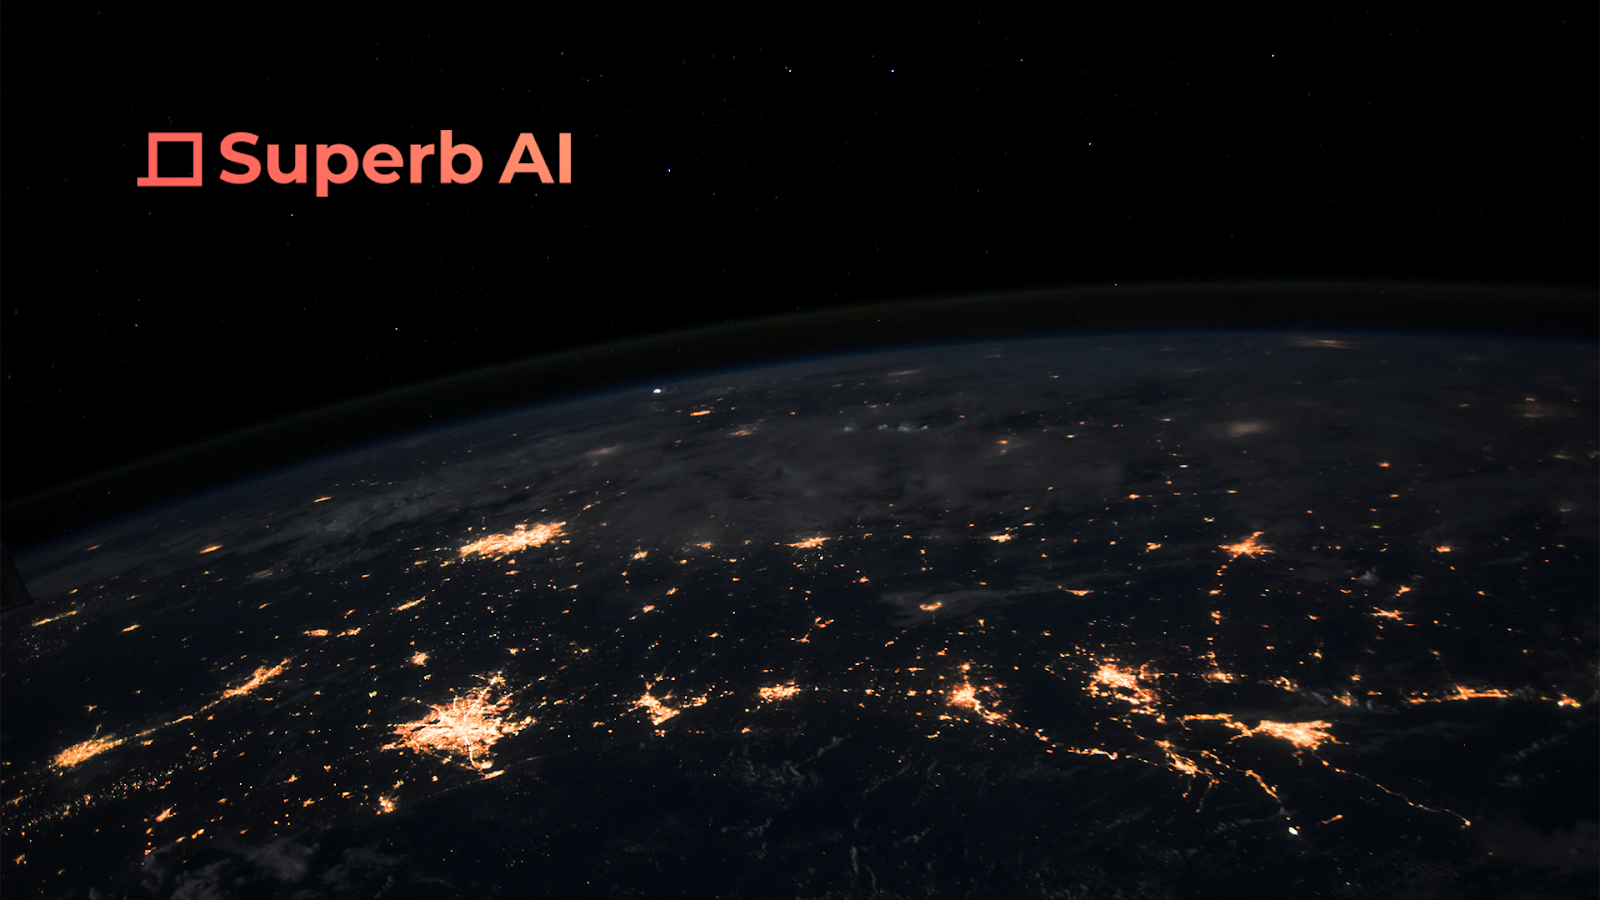 An image showing Superb AI's logo and the space behind it, Superb AI offers state-of-the-Art data Labeling with a true AI-powered data management platform.